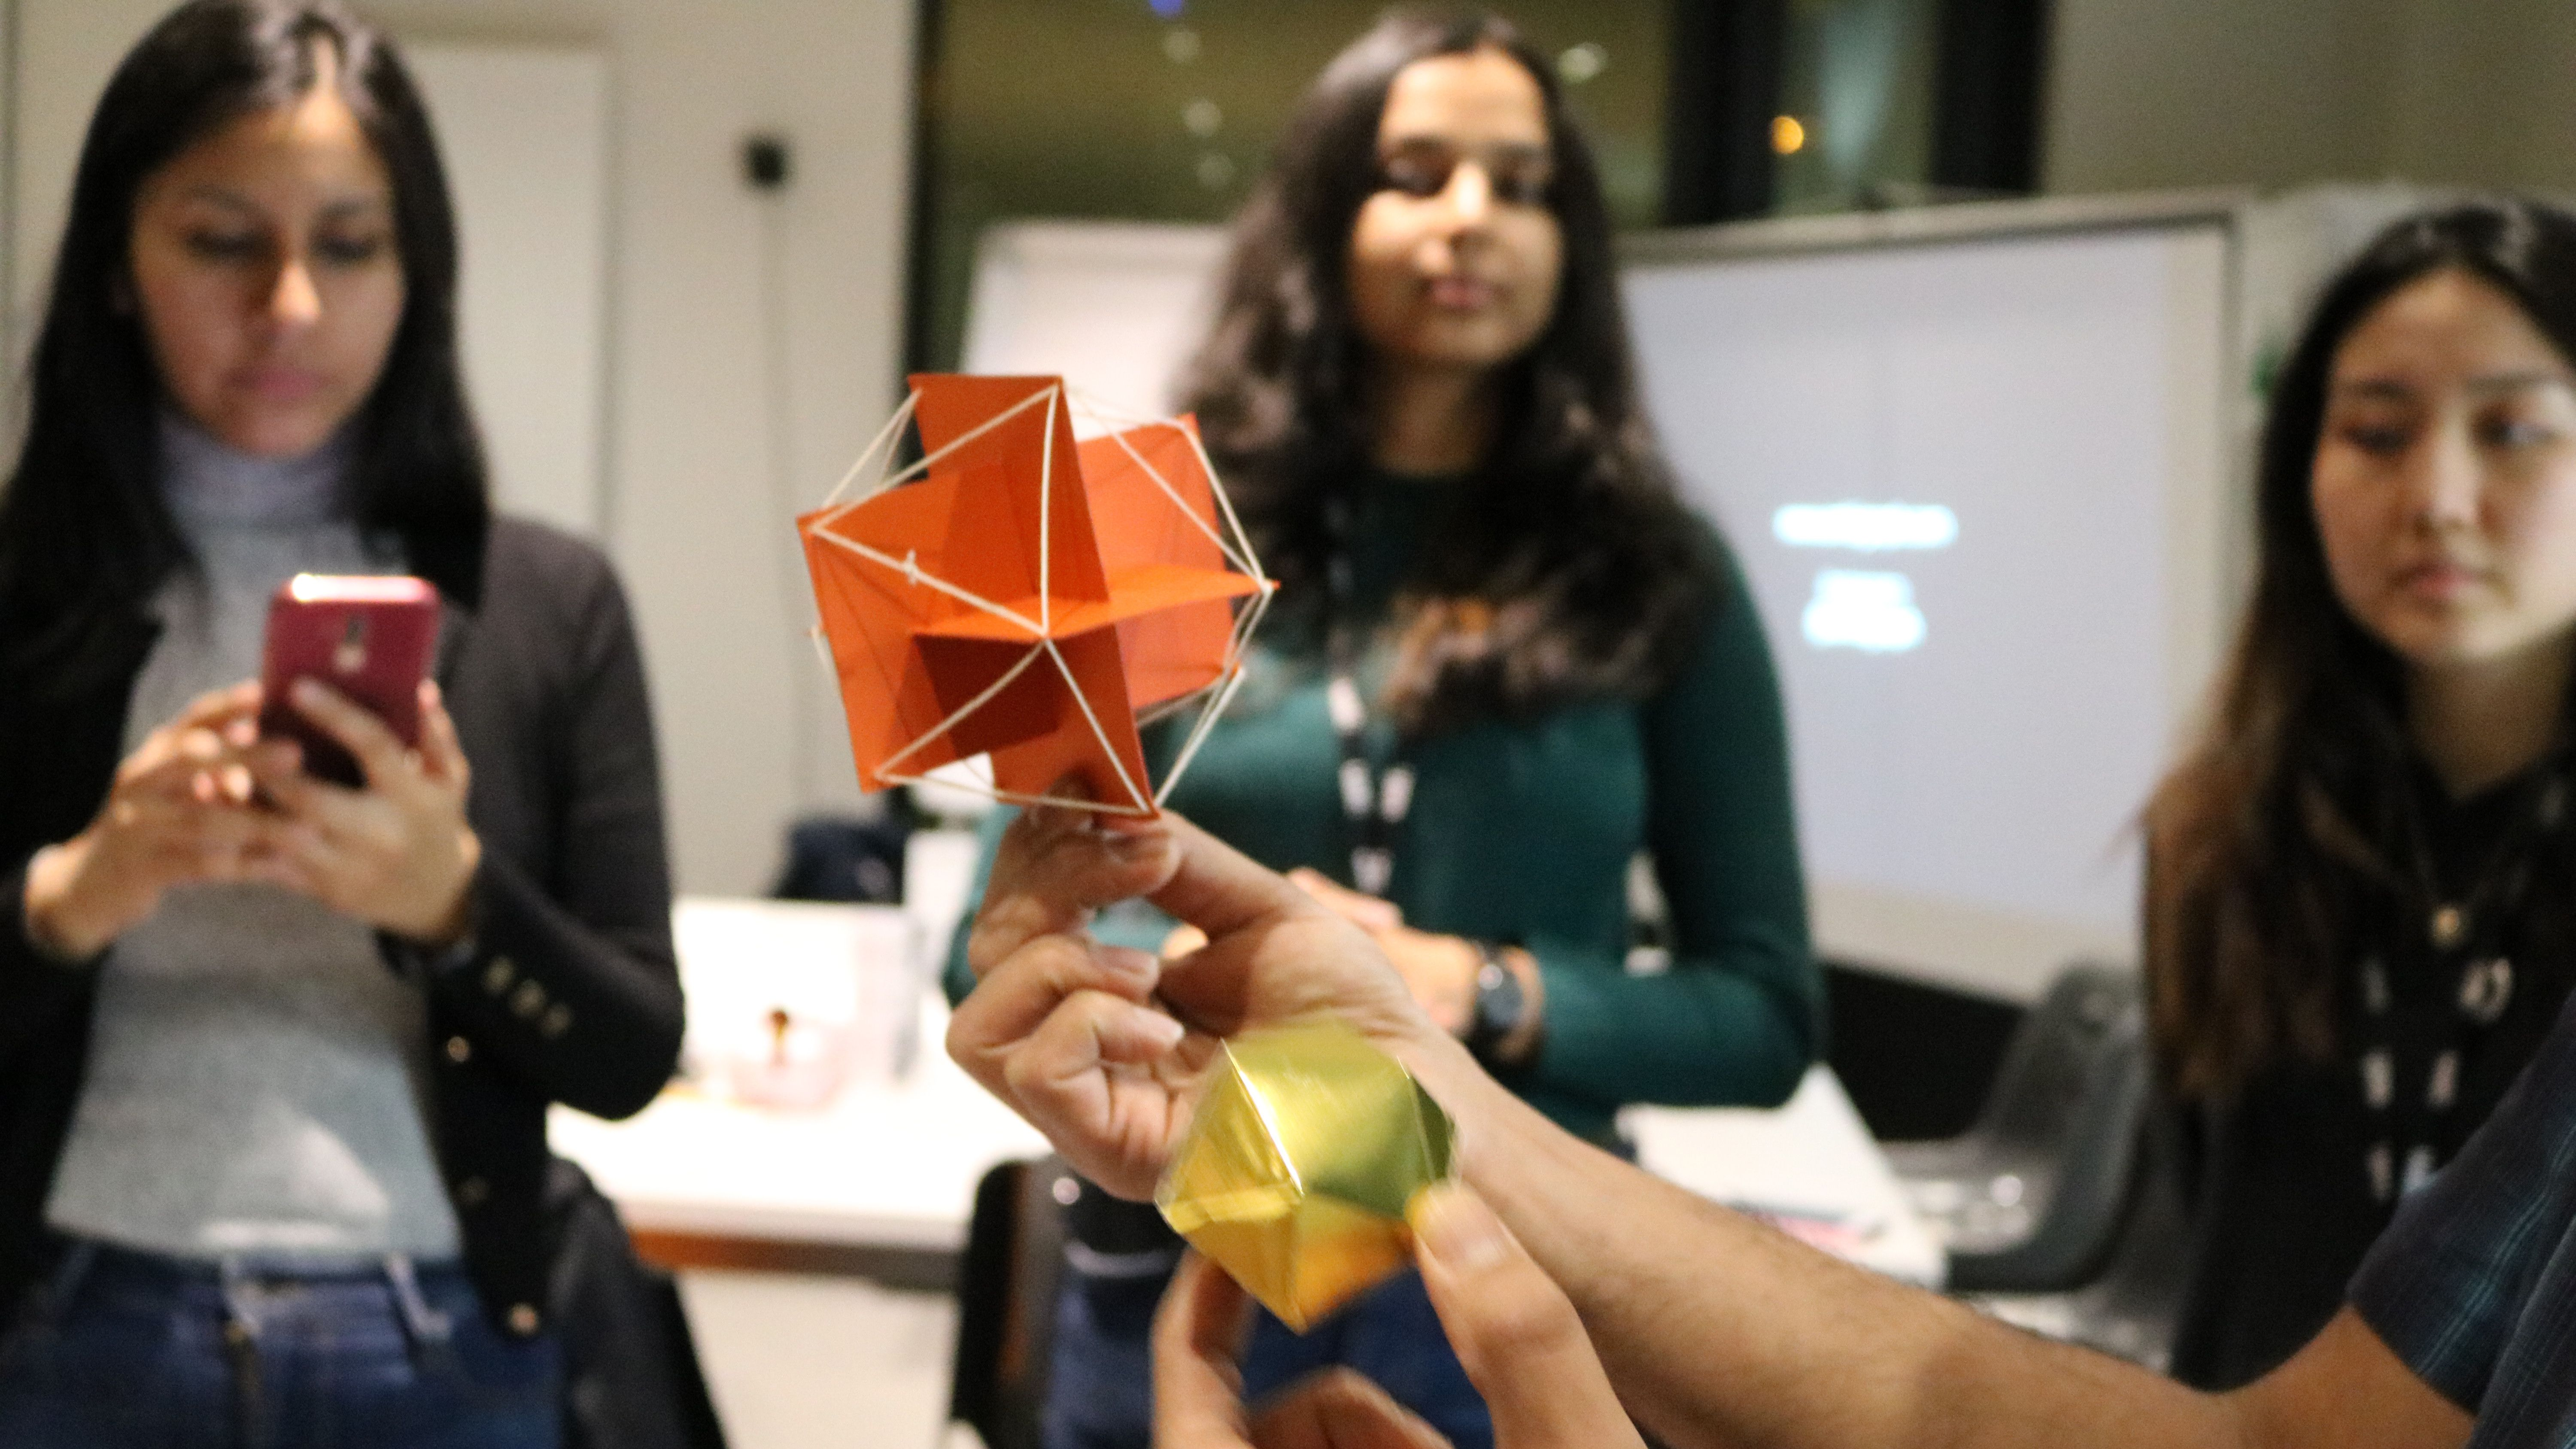 students watching an origami making demonstration